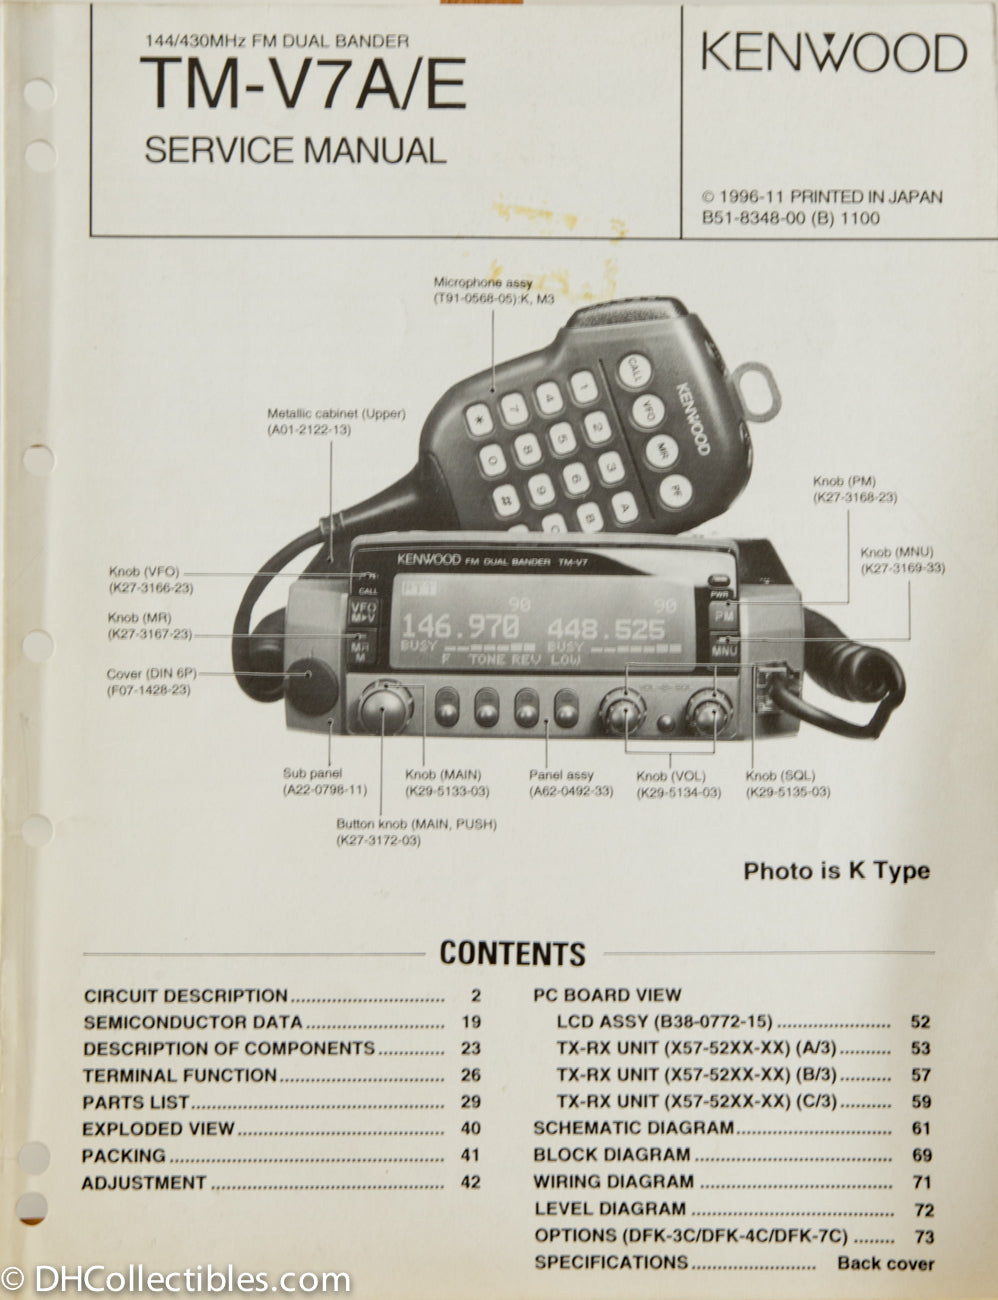 Kenwood TM-V7 A/E Amateur Radio Service Manual